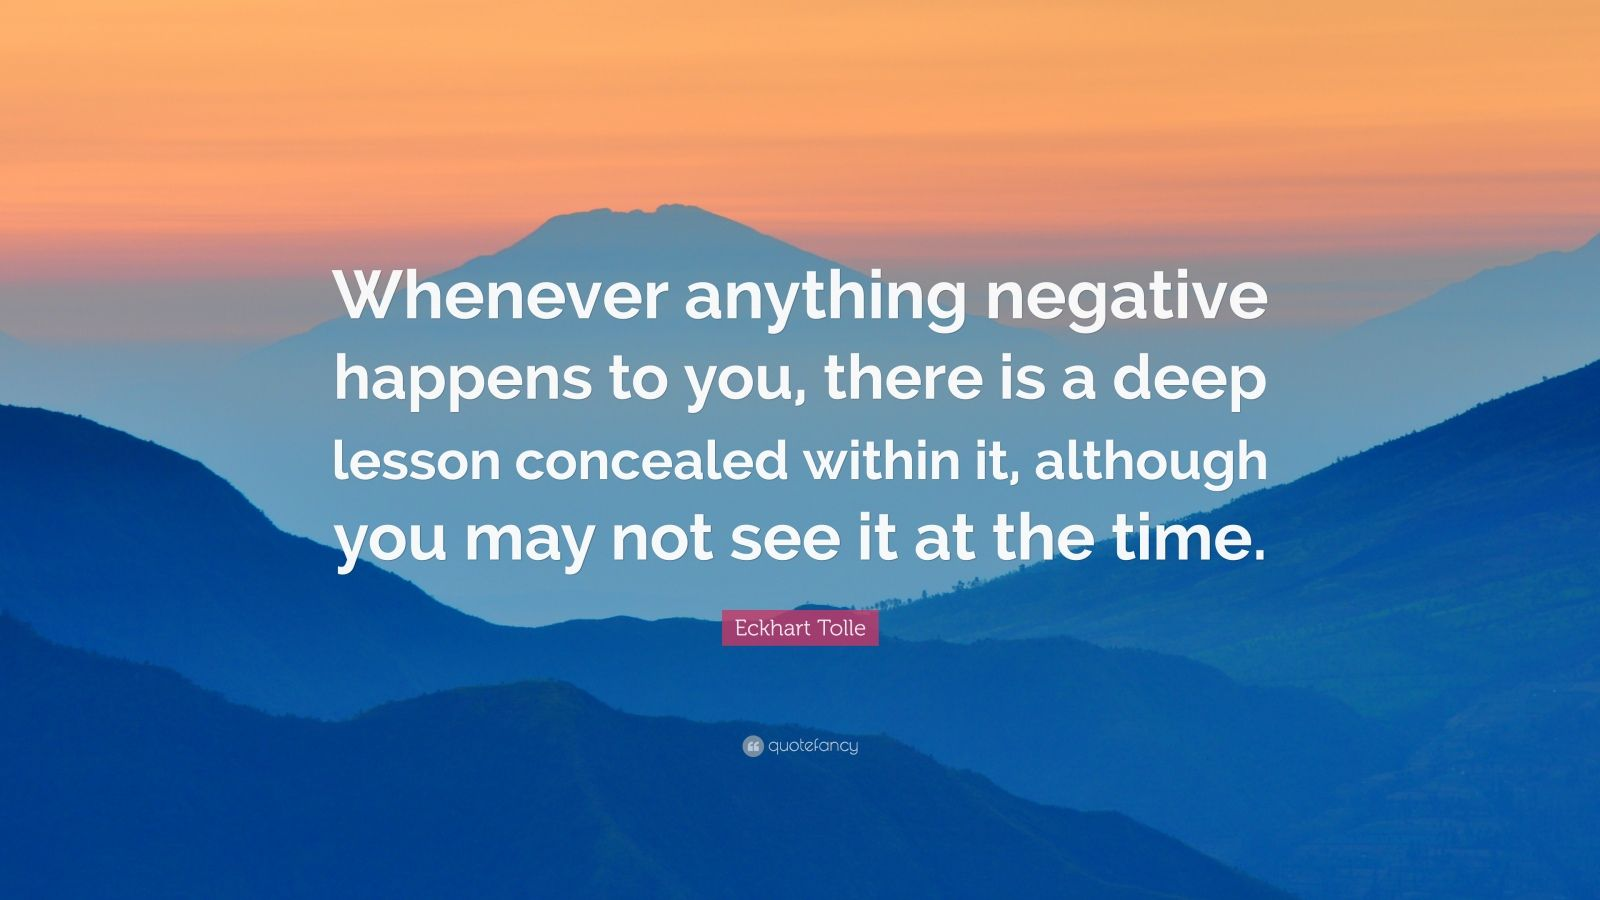 """Eckhart Tolle Quote: """"Whenever anything negative happens to you, there is a deep lesson concealed within it, although you may not see it at the time."""""""